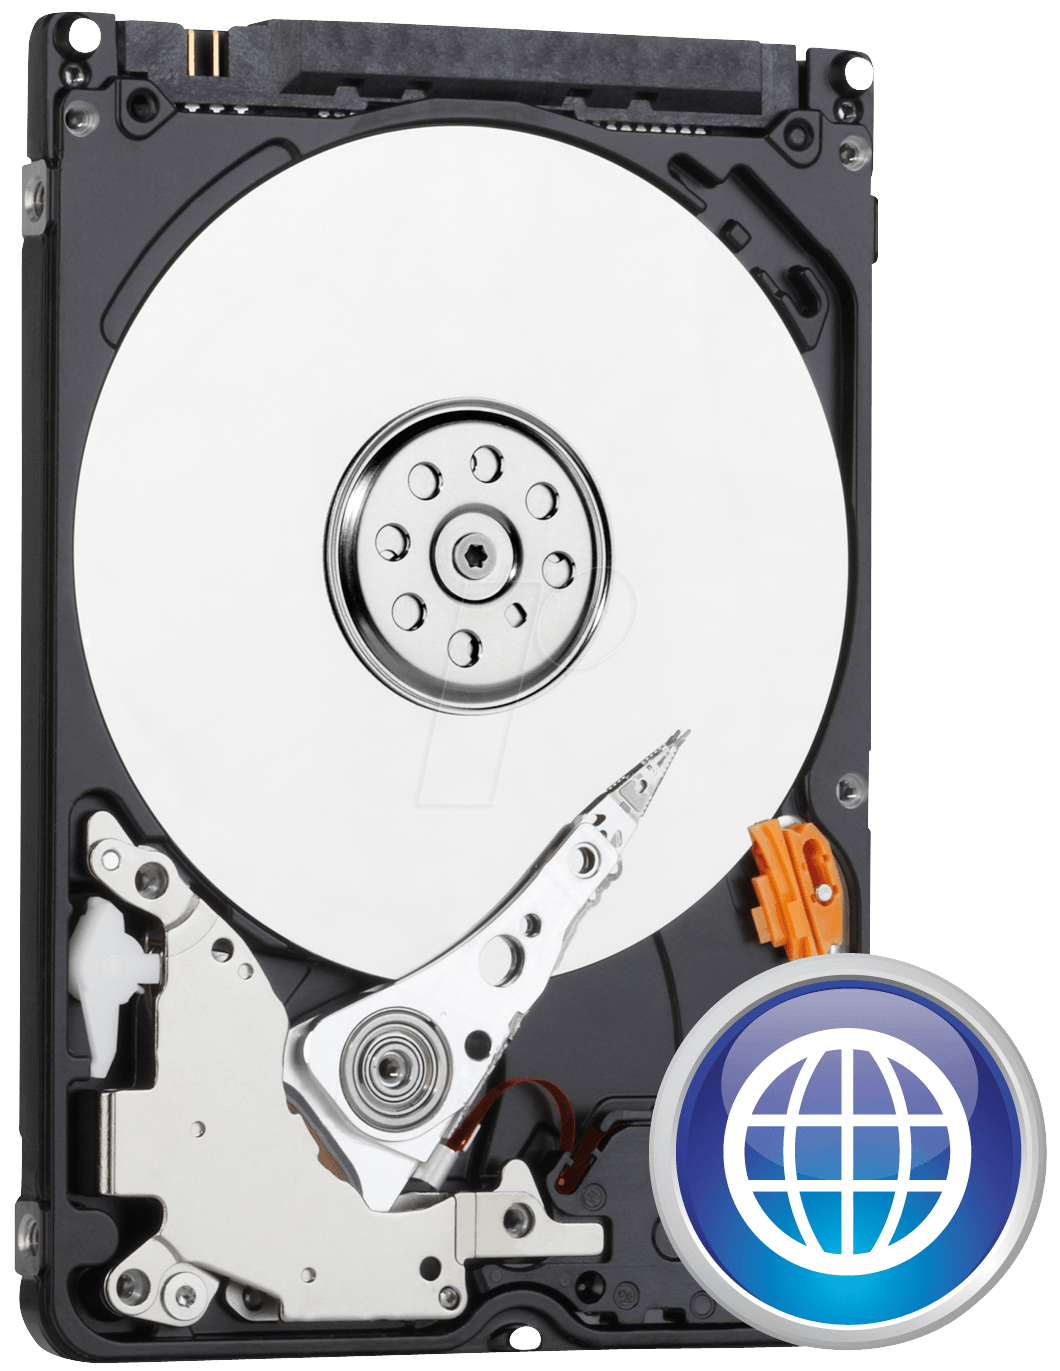 WESTERN DIGITAL WD3200LPVX - Notebook-Festplatte, 320 GB, WD Blue